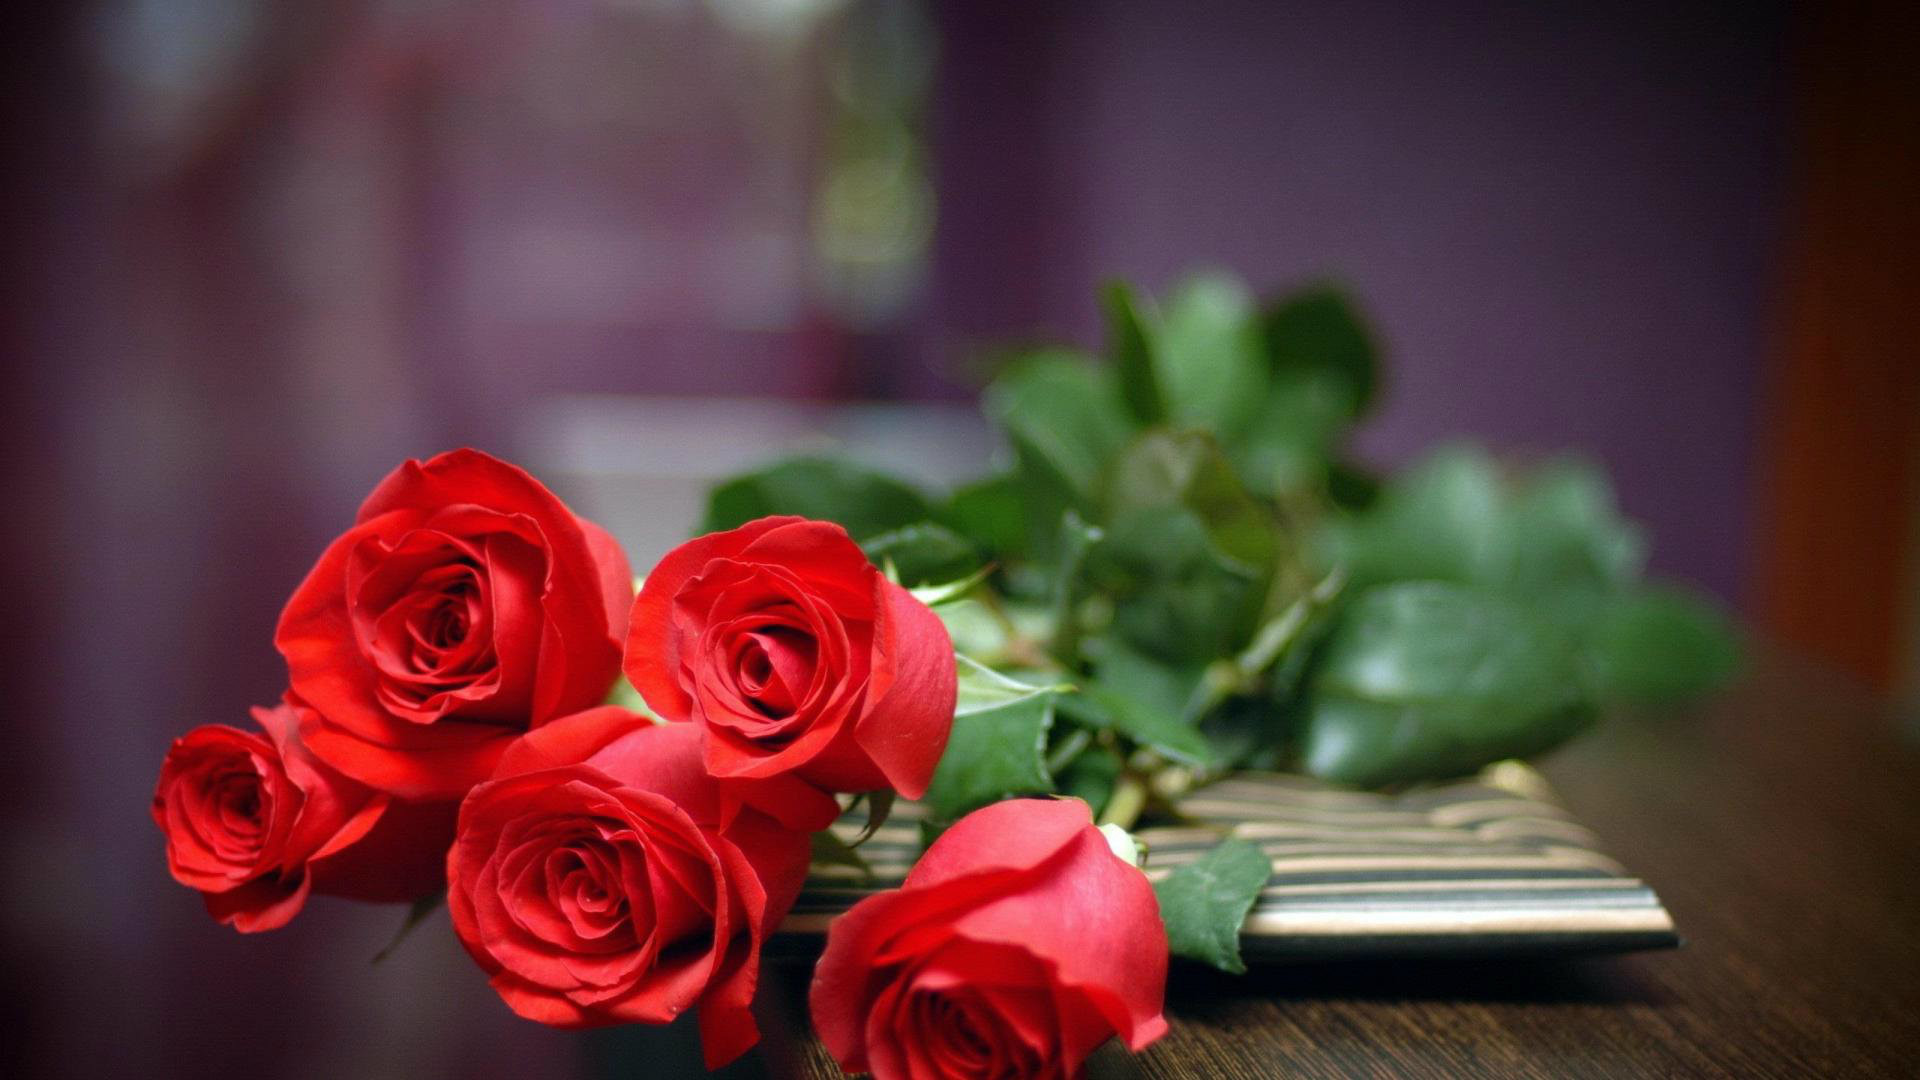 Roses Desktop Wallpapers 63 Background Pictures